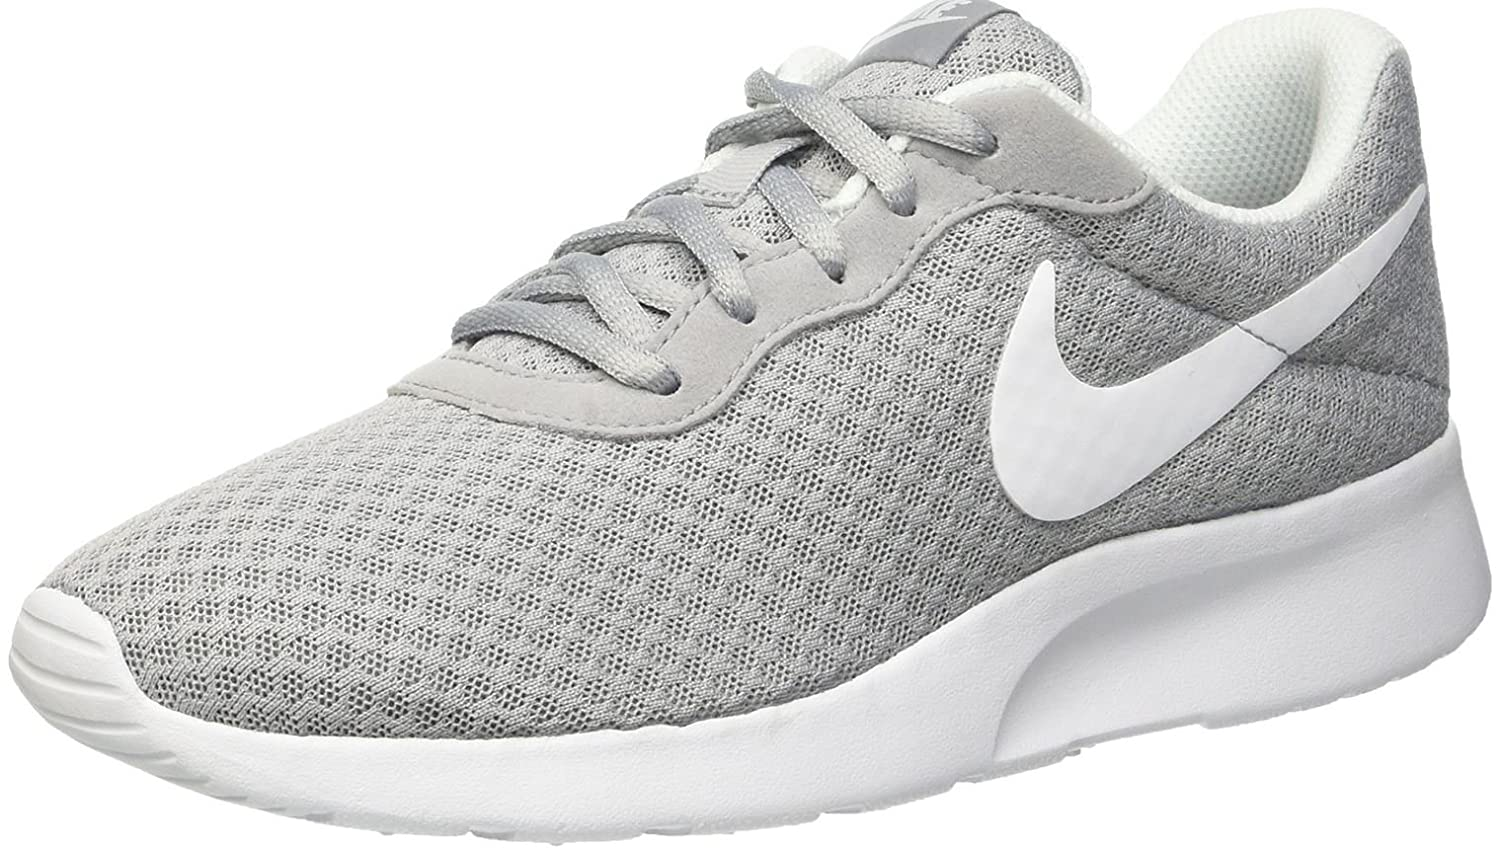 half off e30bd 53d08 Amazon.com   Nike Womens Tanjun Running Sneaker Wolf Grey White 8.5    Fashion Sneakers